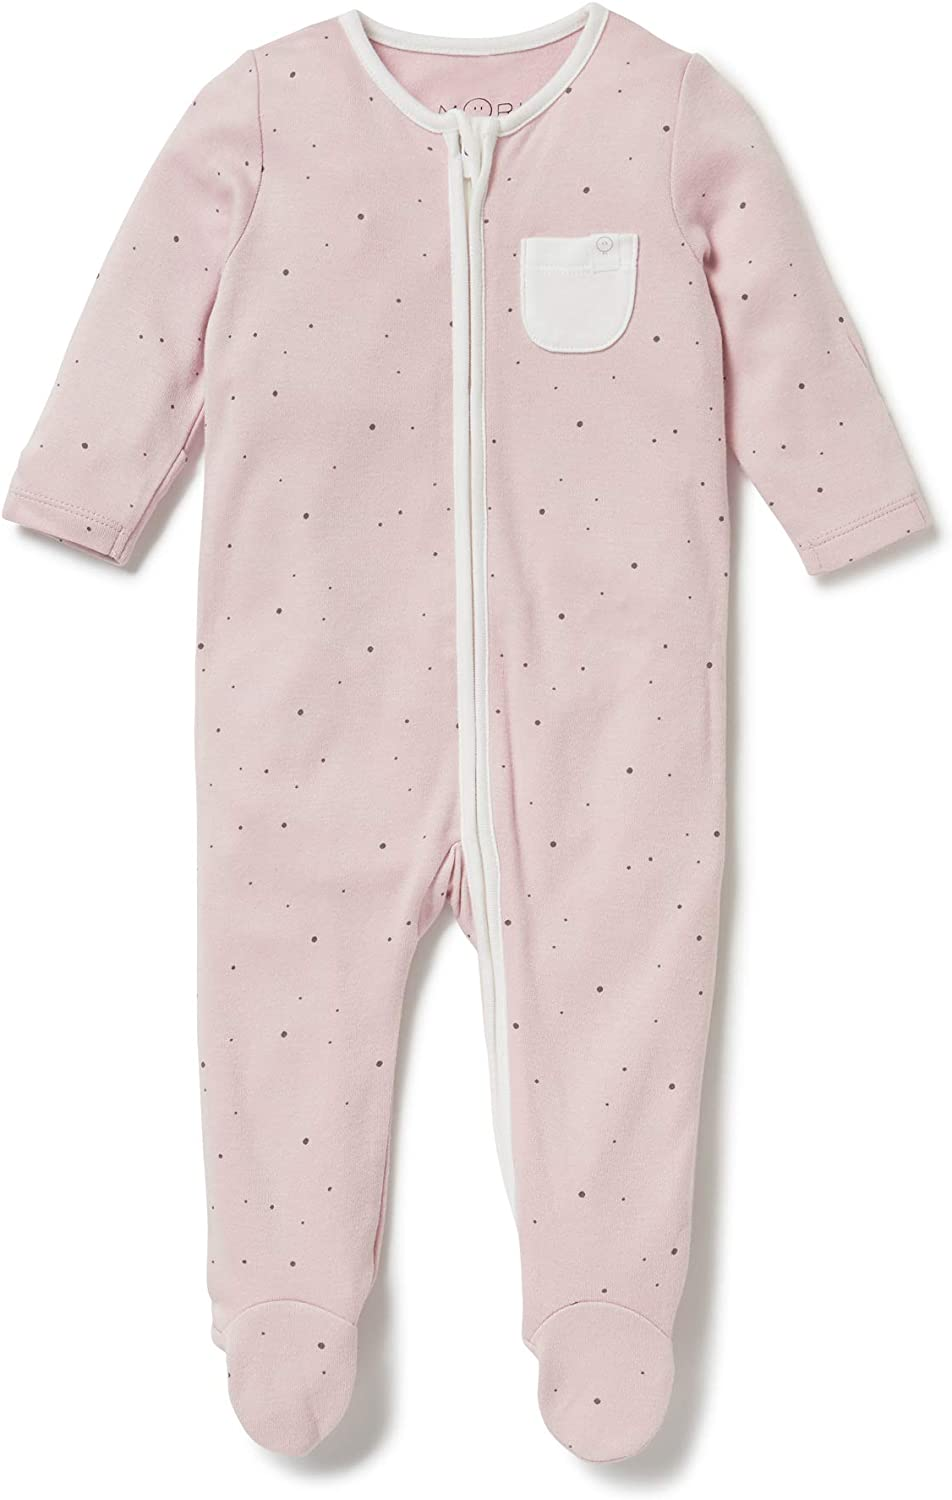 MORI Zip-Up Sleepsuit 18-24 Months, Stardust 30/% Organic Cotton /& 70/% Bamboo available from newborn up to 2 years